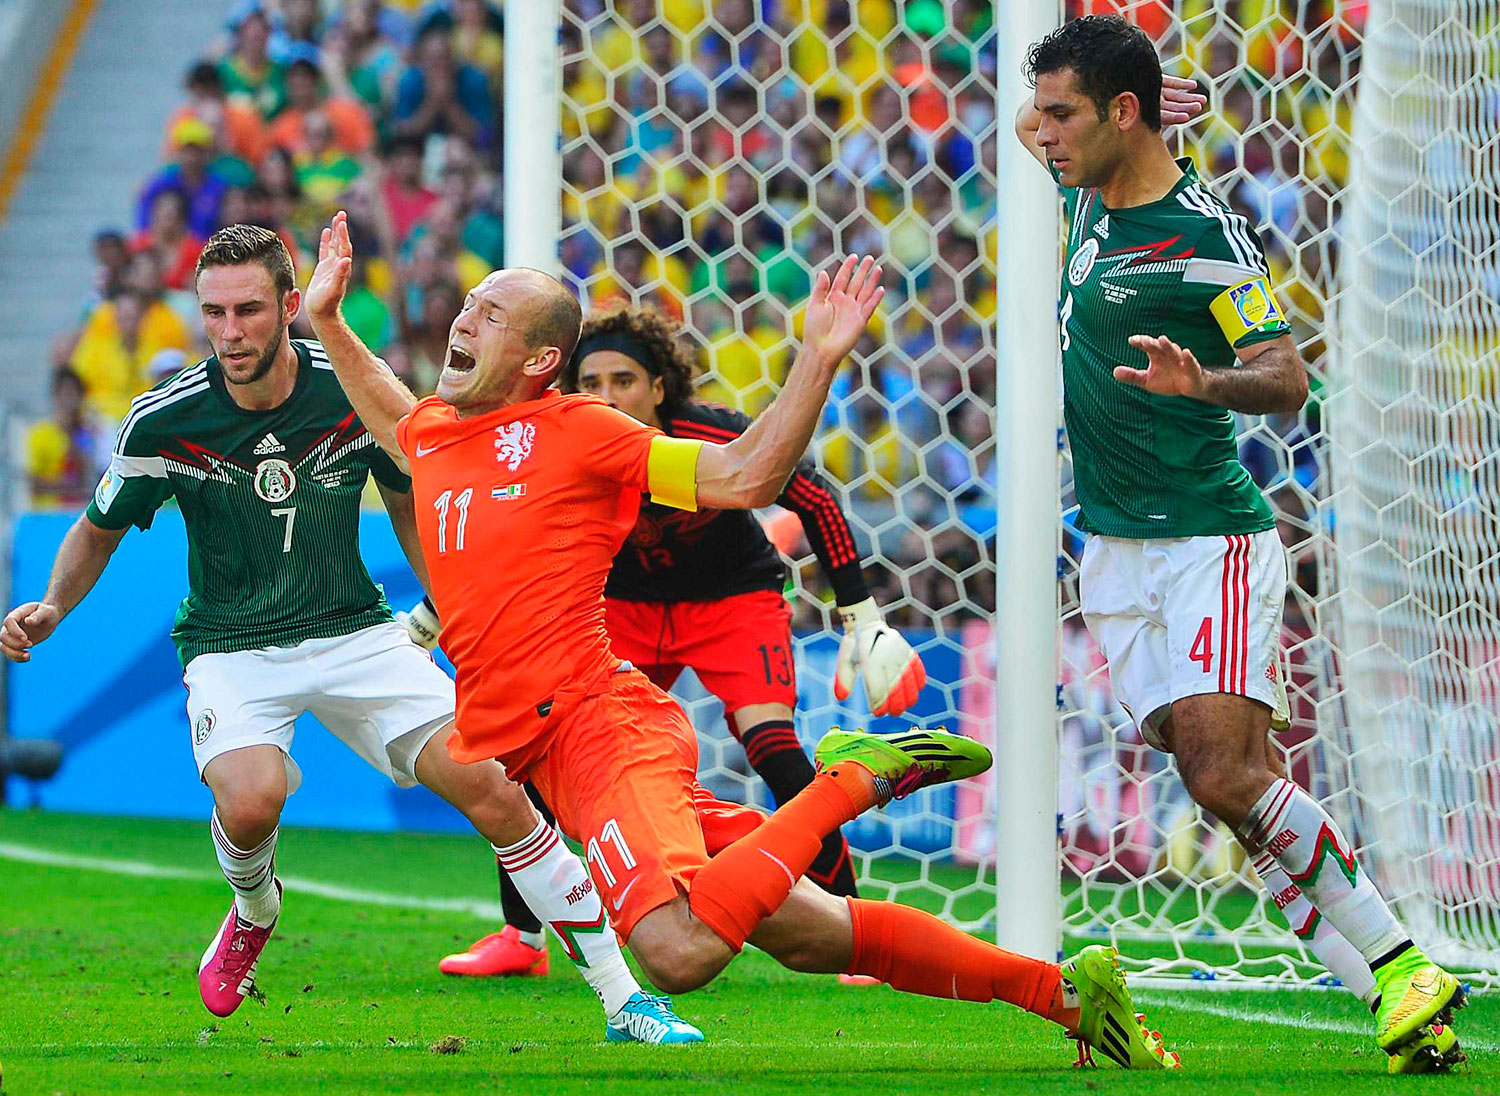 Netherlands vs. Mexico                                                              Mexico's Rafael Marquez fouls Arjen Robben of the Netherlands in the box at the Estadio Castelao in Fortaleza, Brazil on June 29, 2014.